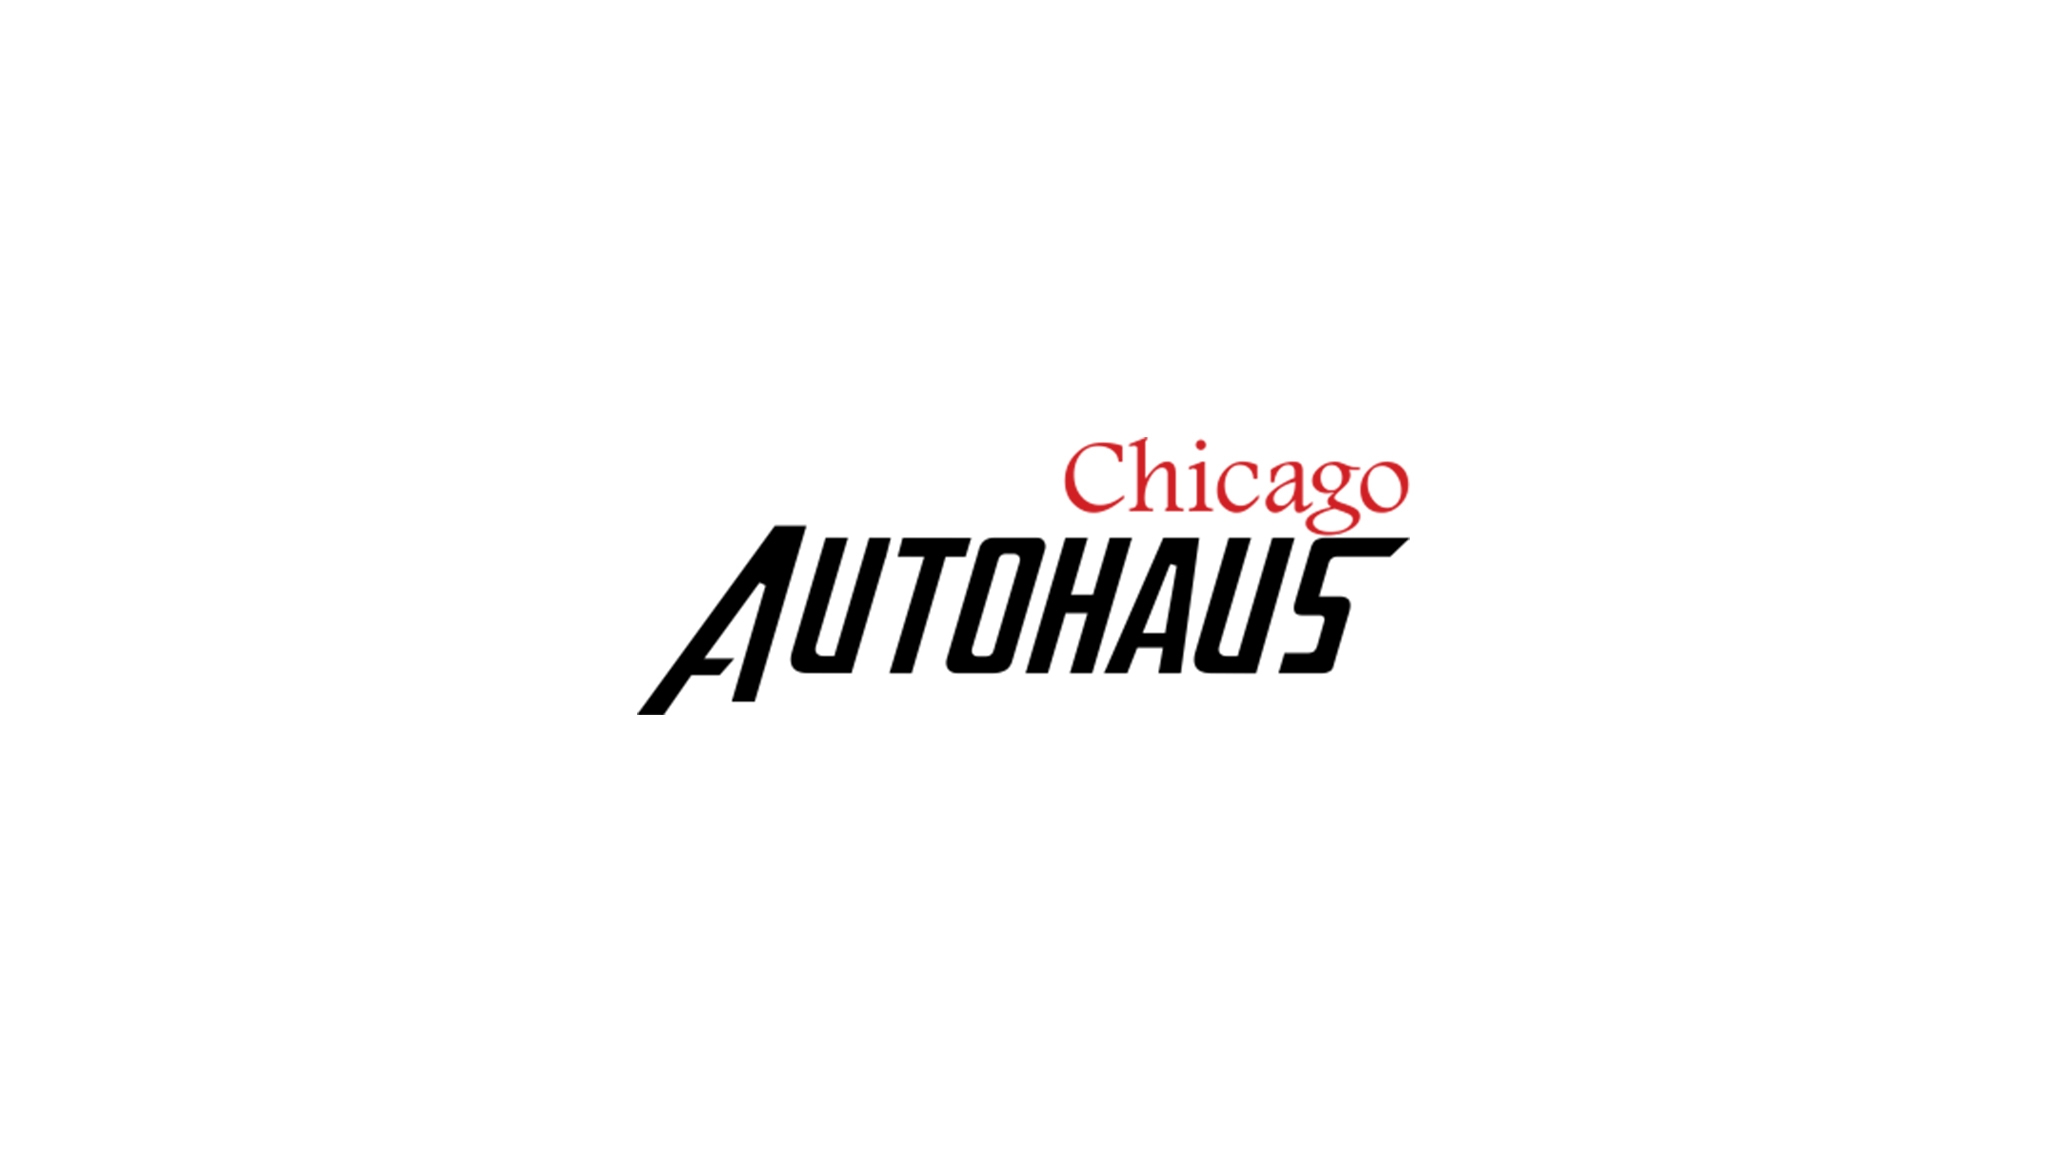 chicagoautohaus (@chicagoautohaus) Cover Image